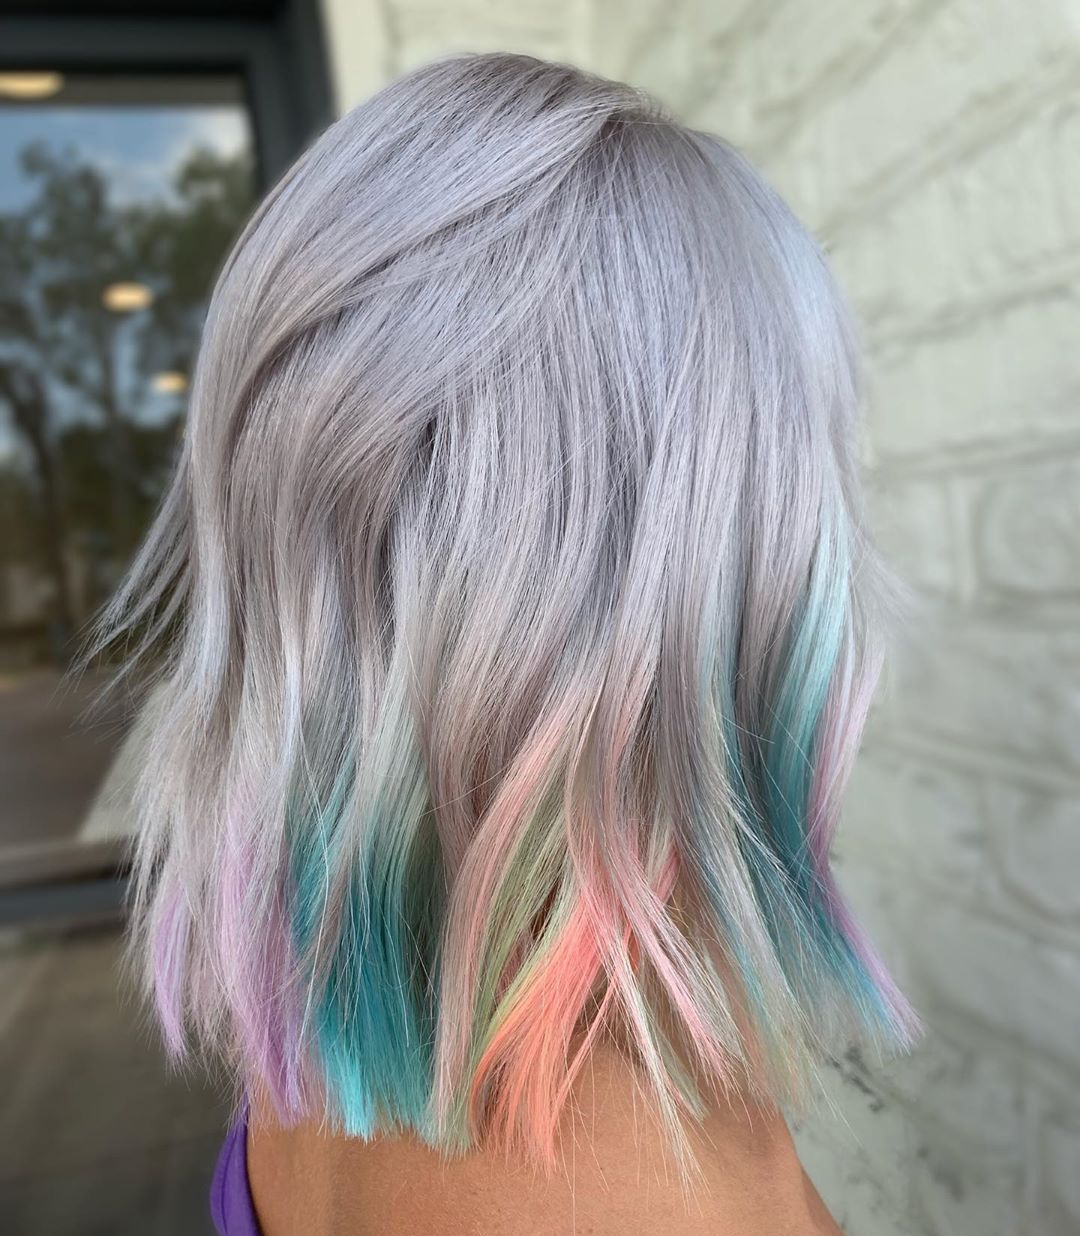 Gray Hair with Rainbow Highlights